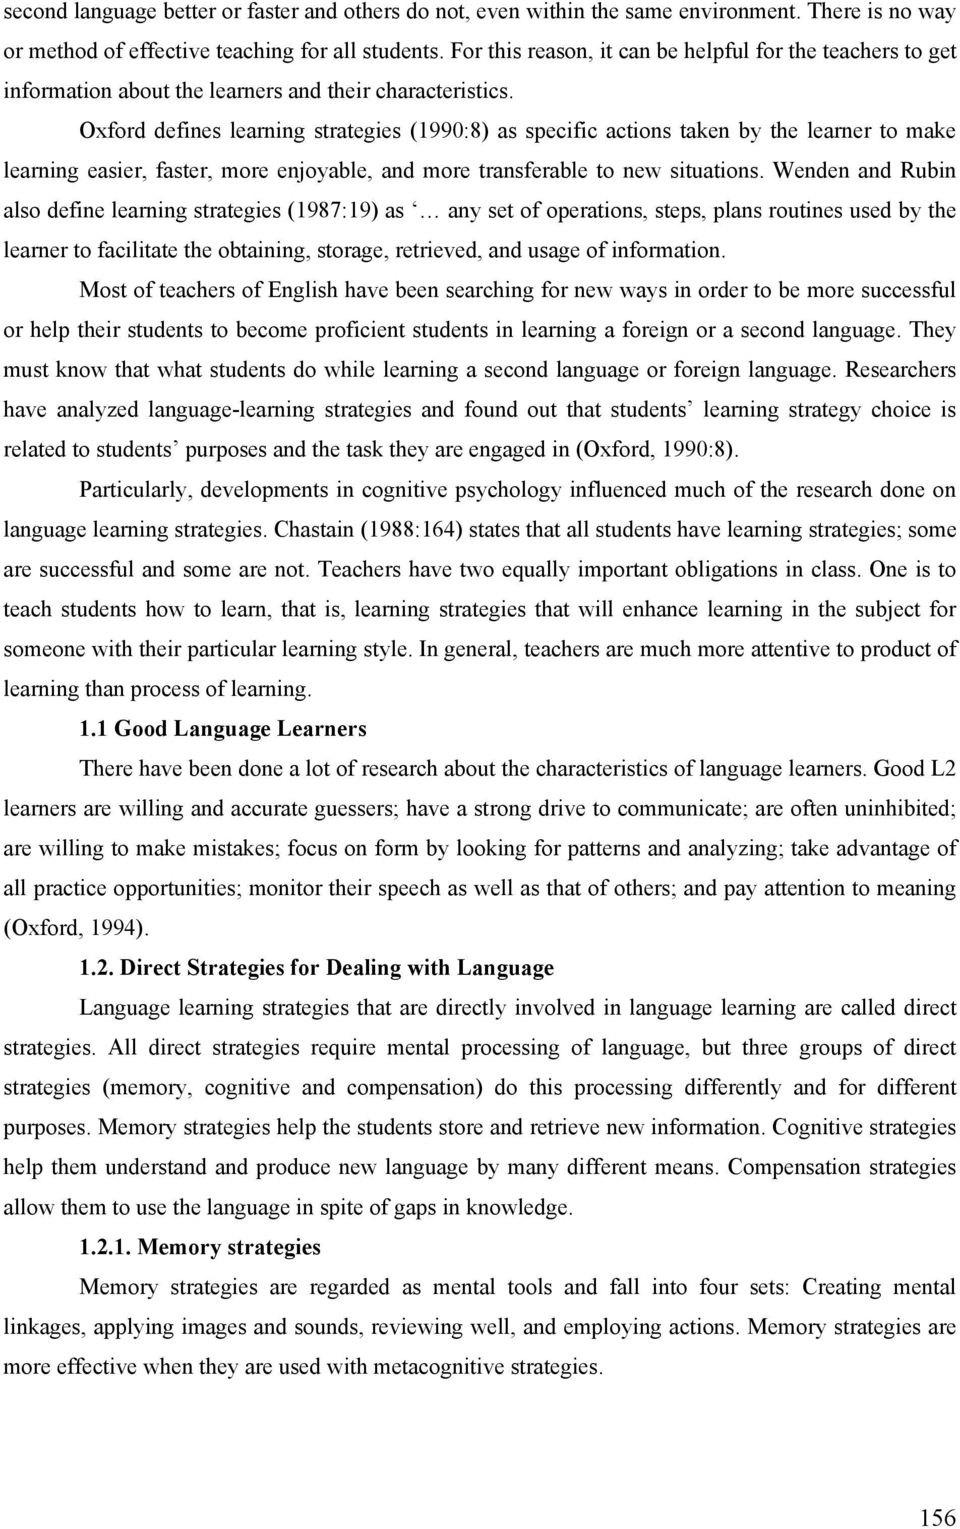 Oxford defines learning strategies (1990:8) as specific actions taken by the learner to make learning easier, faster, more enjoyable, and more transferable to new situations.